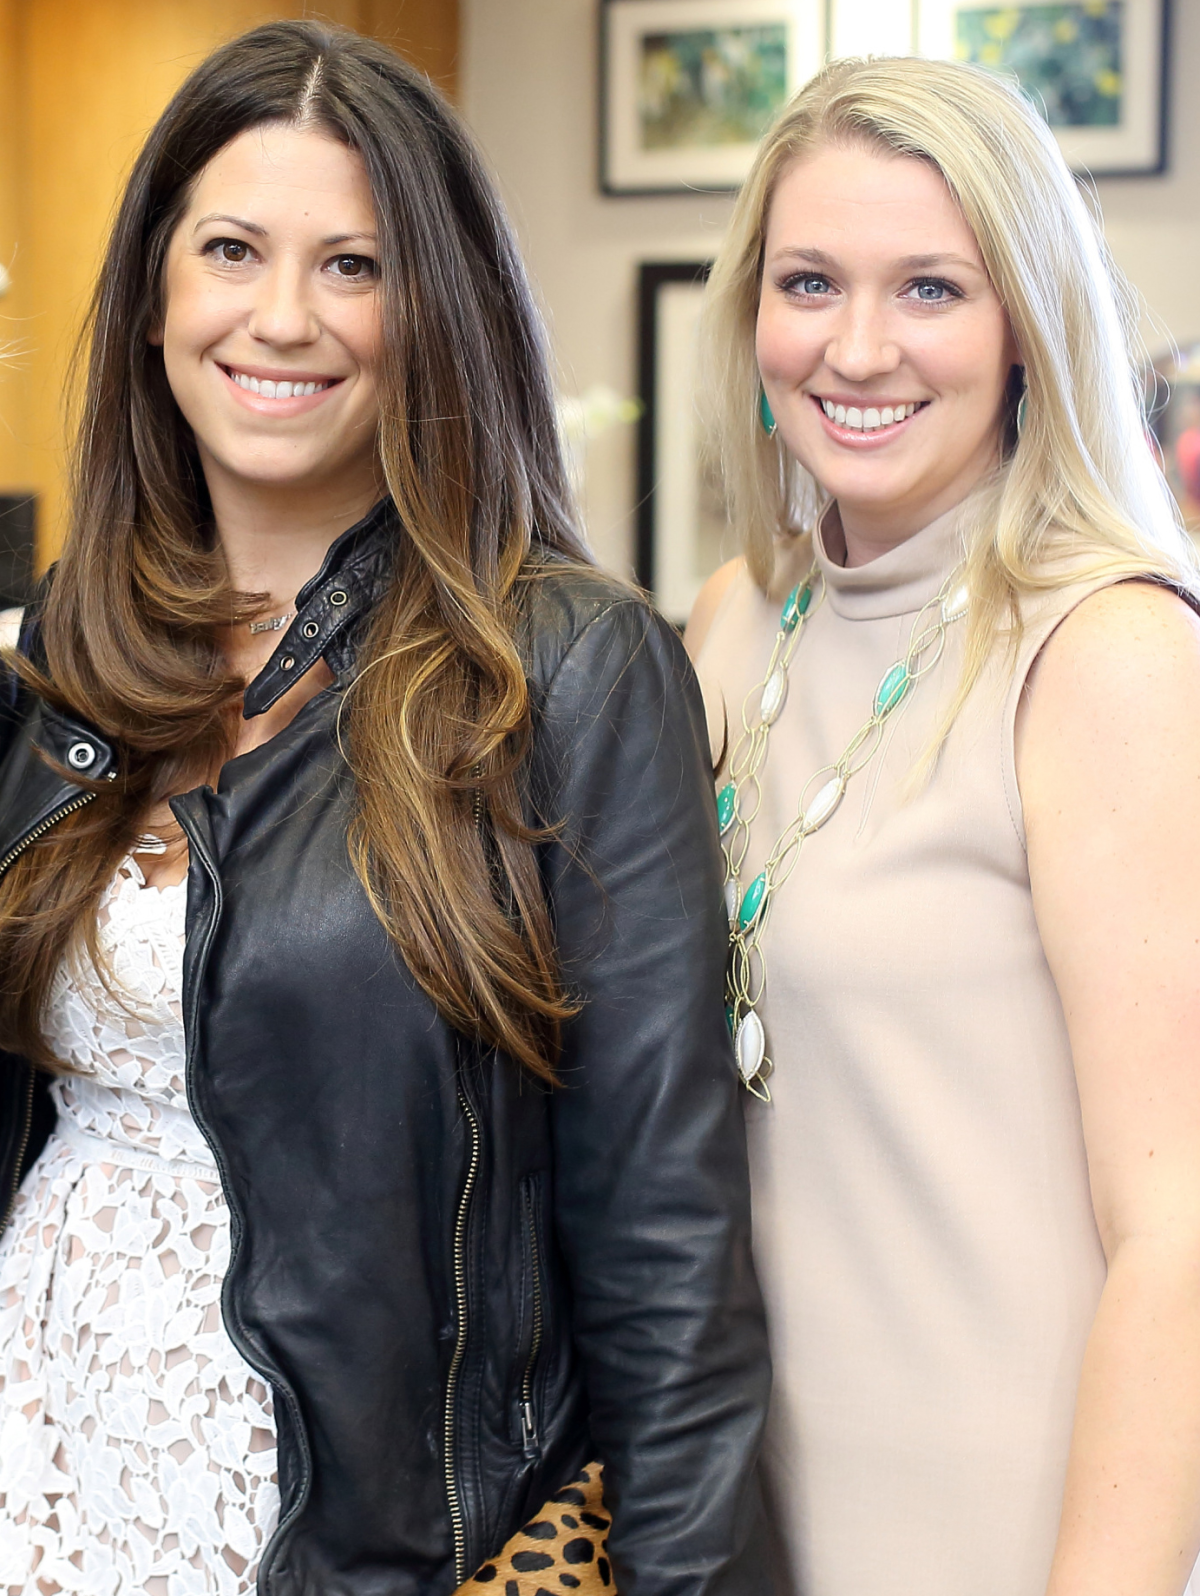 Houston, Una Notte kickoff party, October 2015, Ally Shell van Koolwijk, Christina Stith